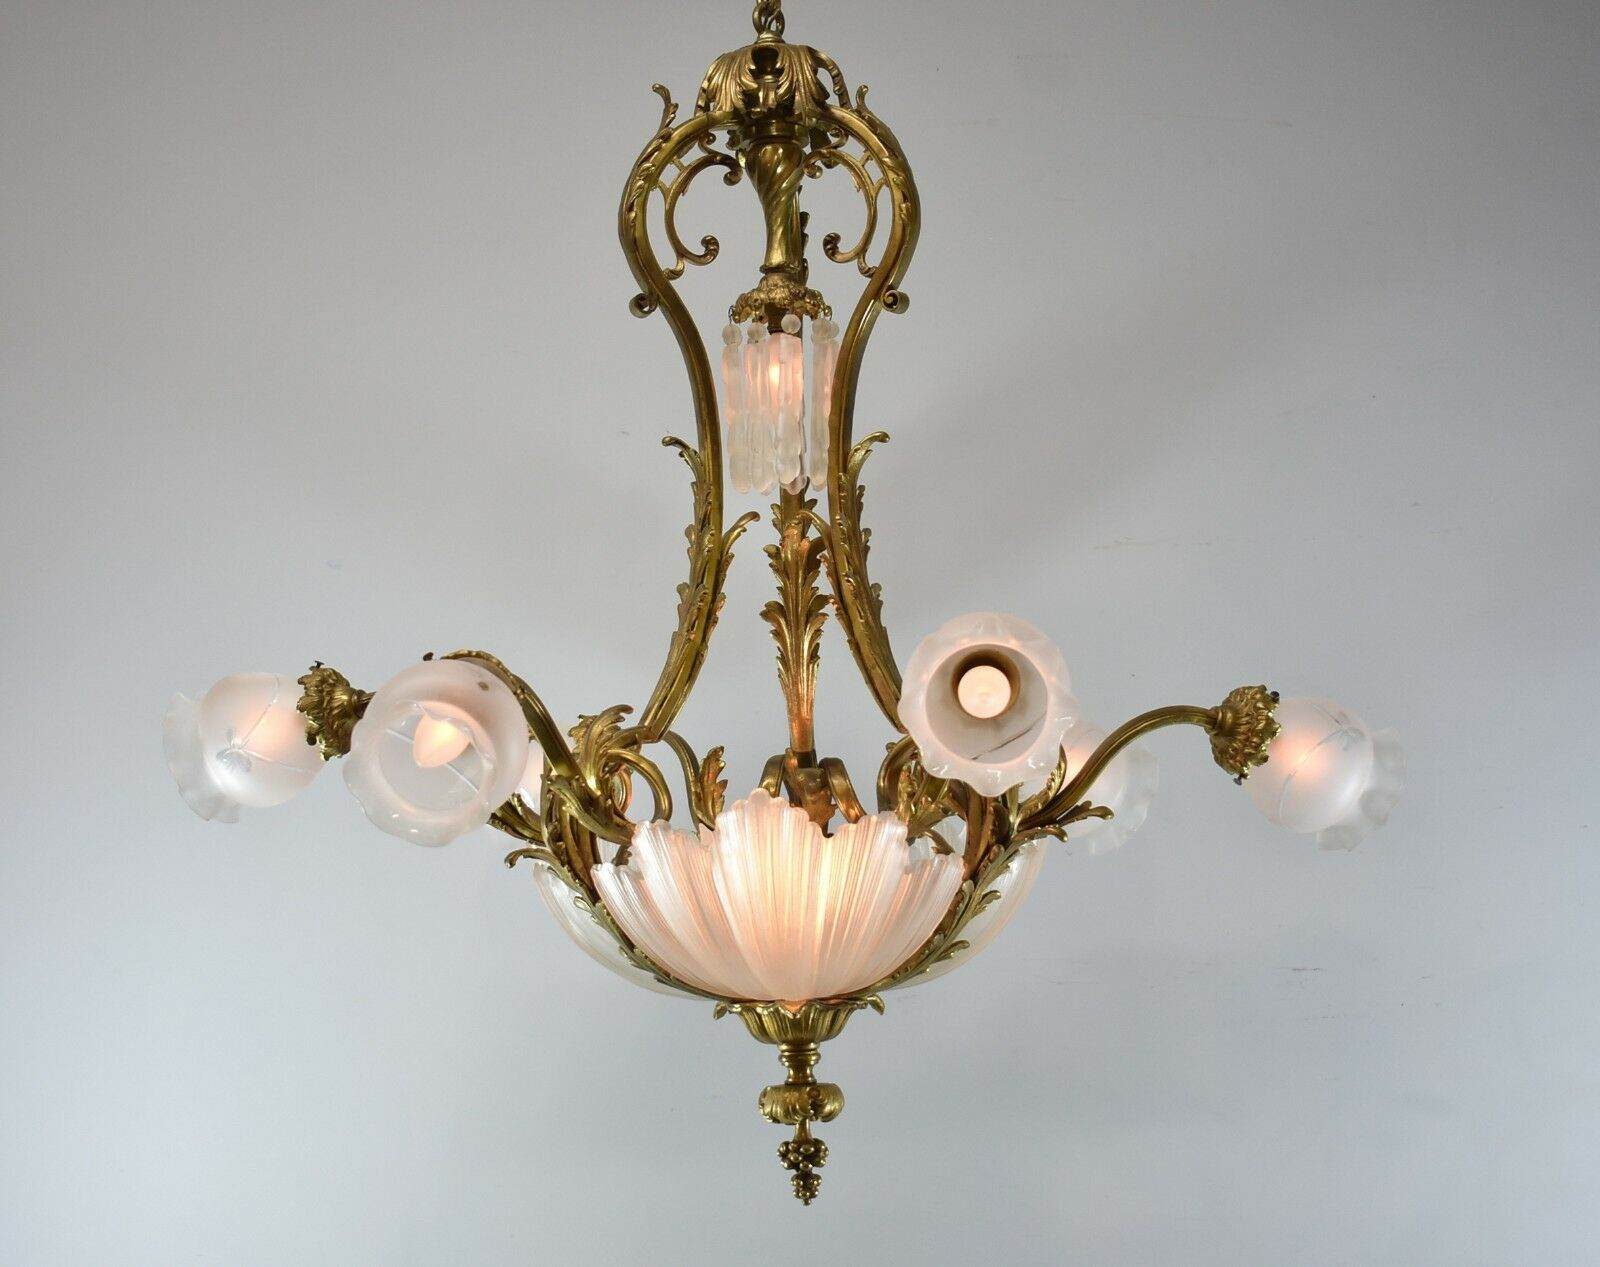 Turn Of The Century Bronze Rococo Style Six Arm Chandelier Light Fixture